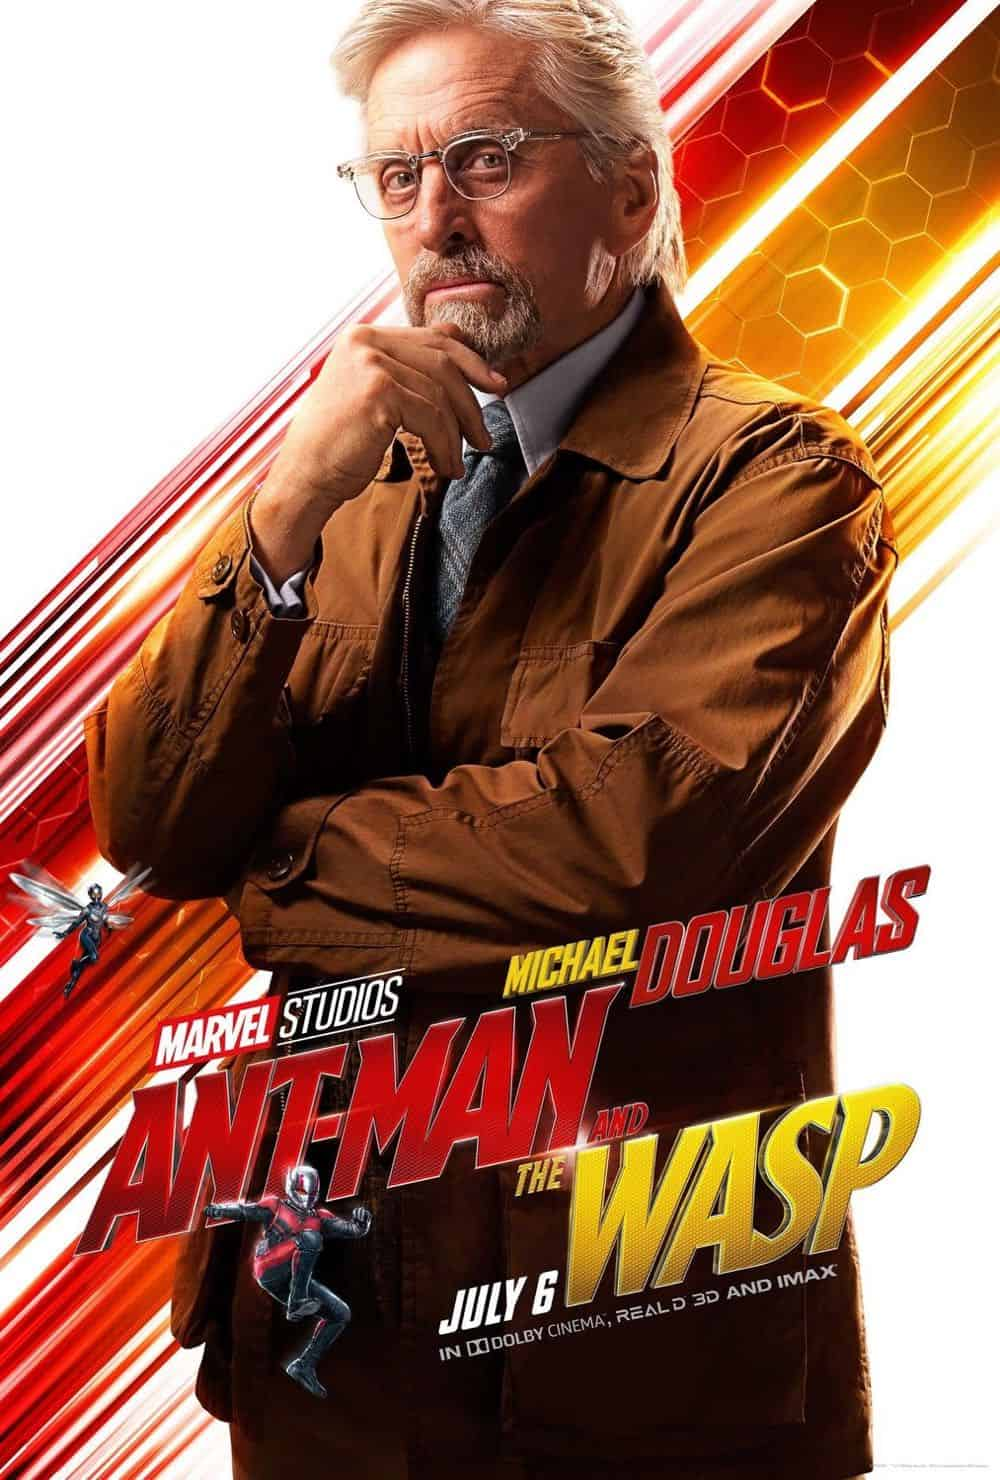 Ant-Man-And-The-Wasp-Movie-Character-Poster-Michael-Douglas